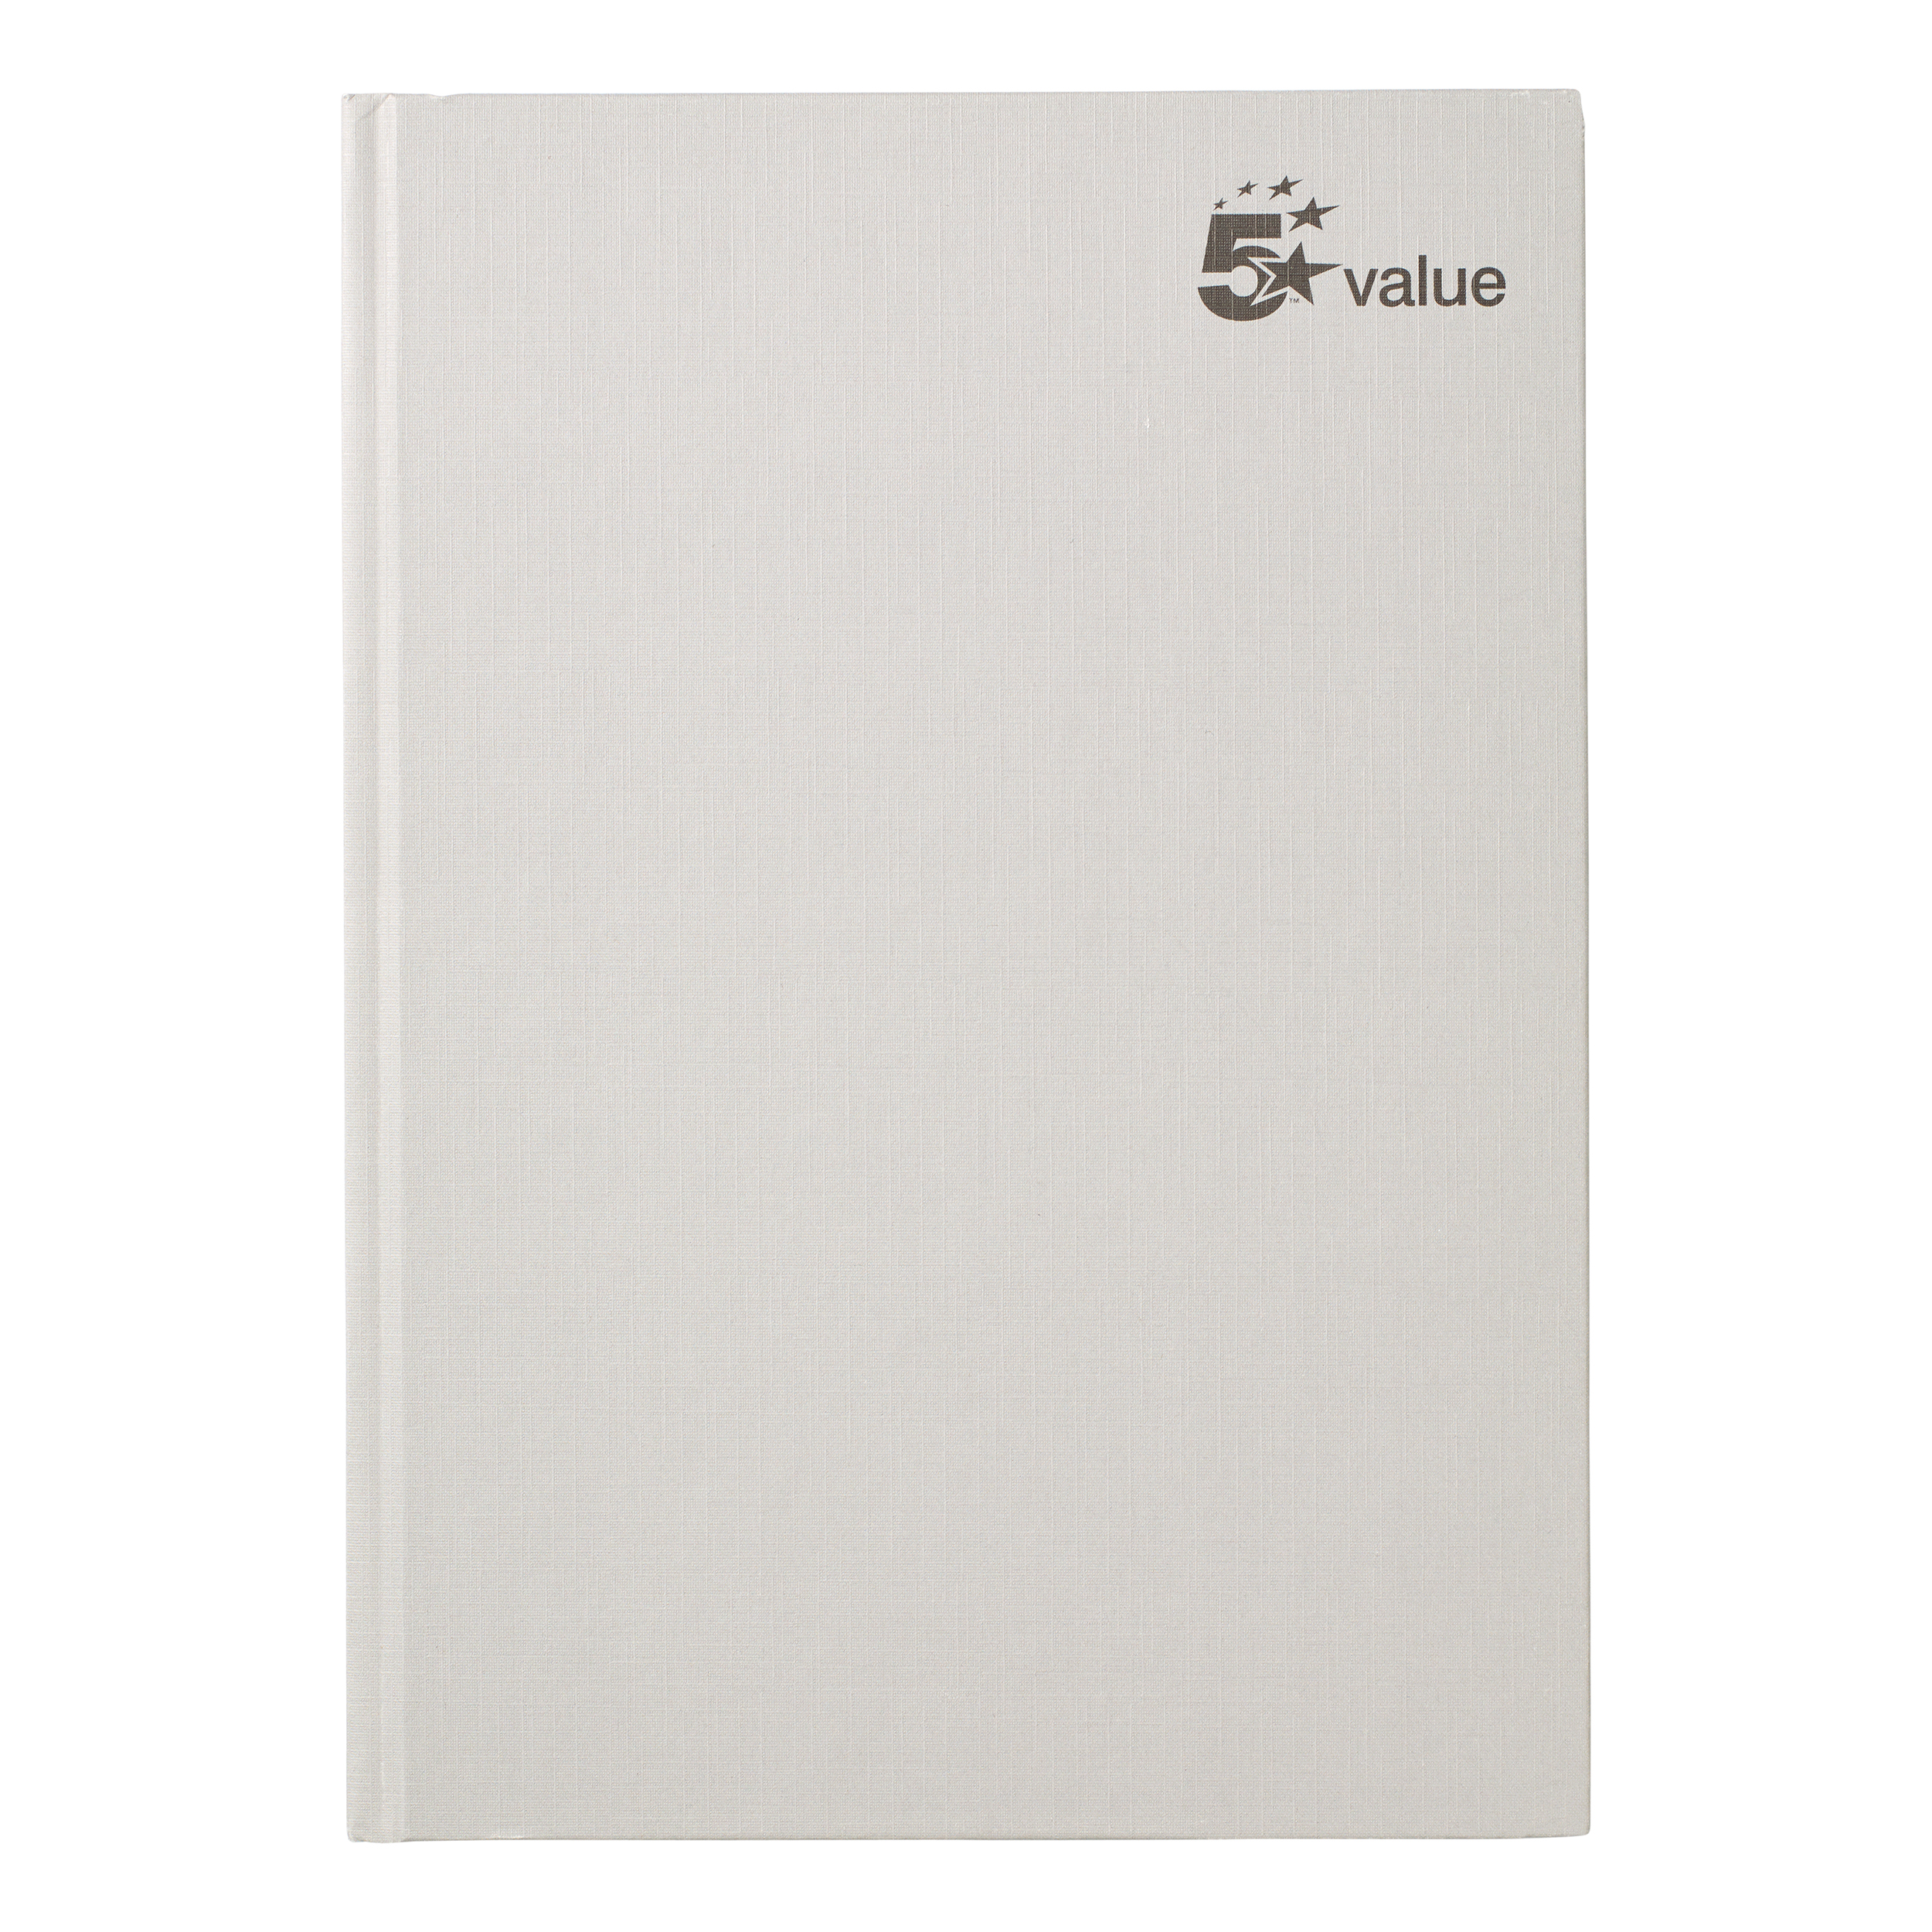 5 Star Value Casebound Notebook 70gsm Ruled 192pp A4 Pack 5